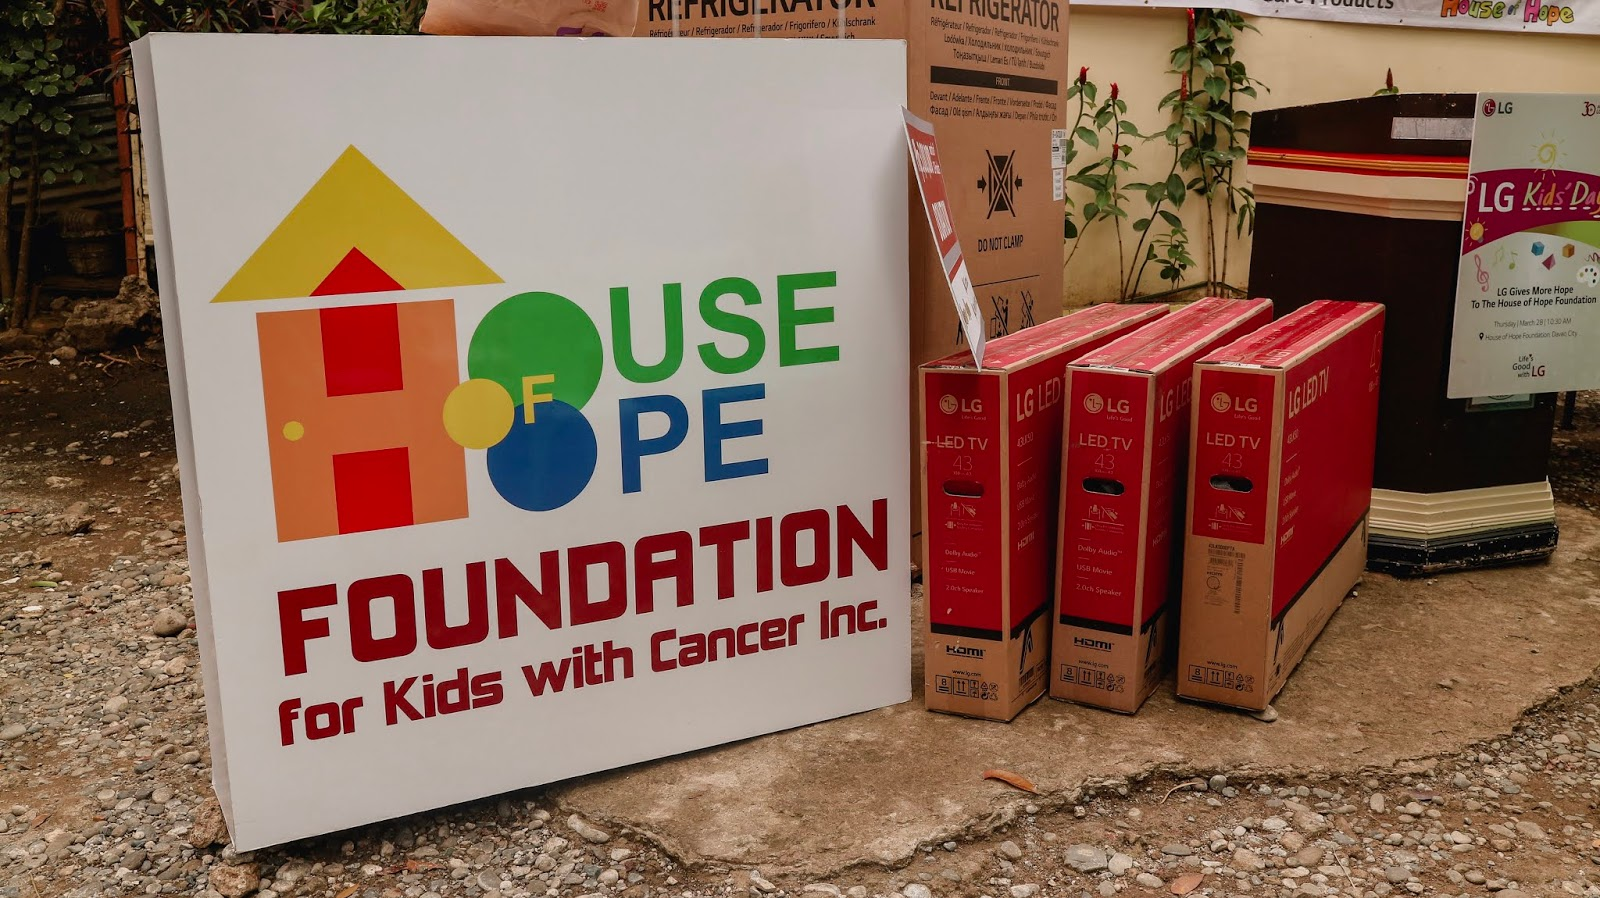 LG Electronics gives back to children at The House of Hope Foundation